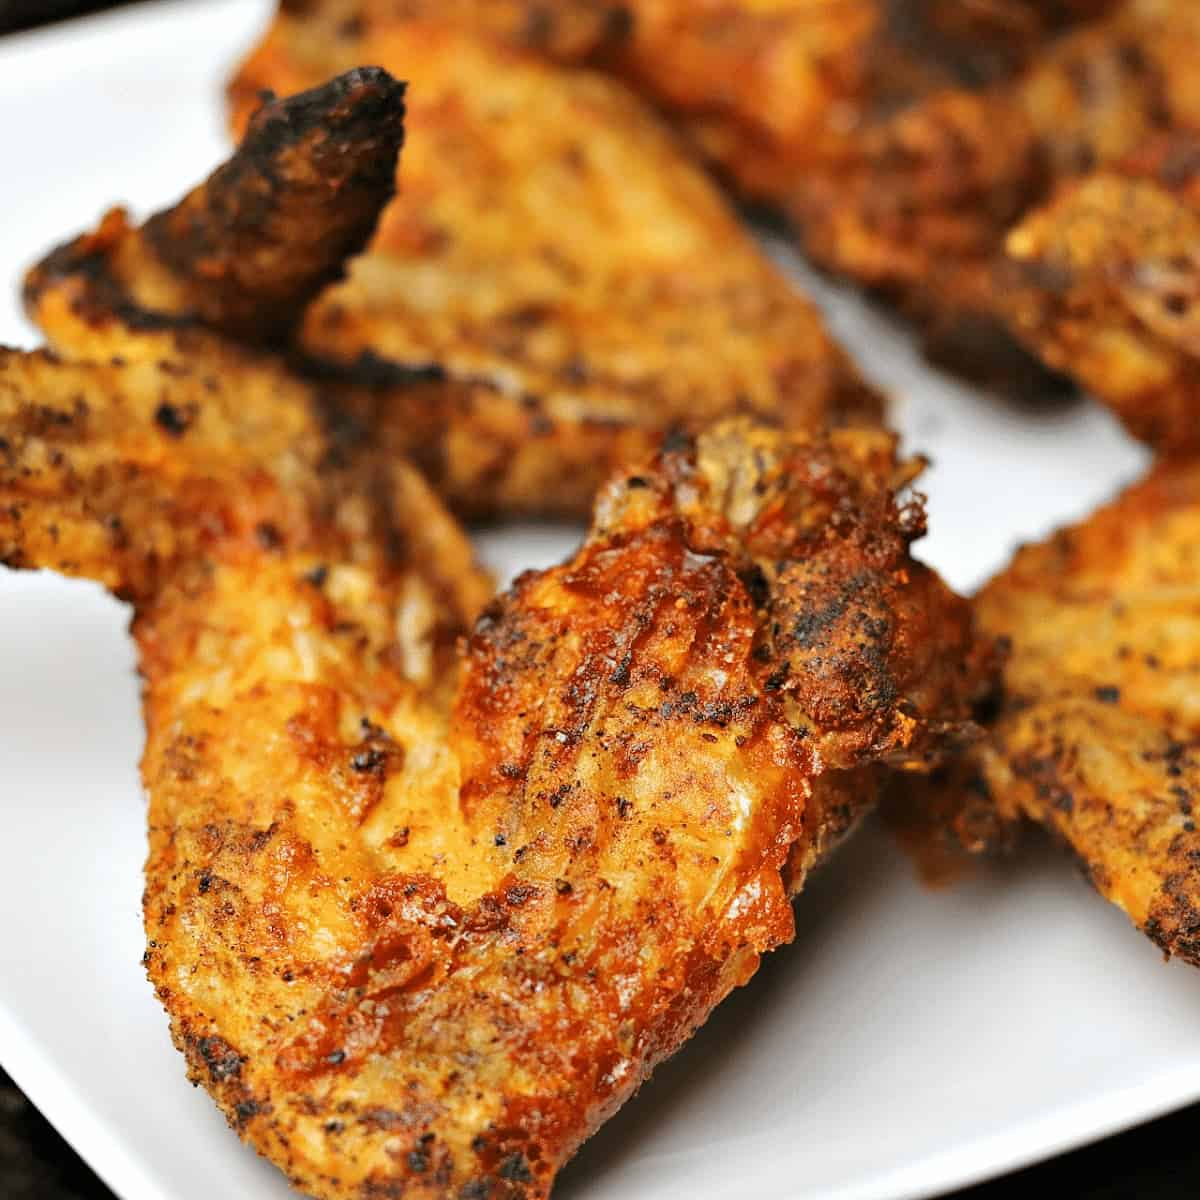 a close-up of an air fryer fried chicken wing on a white plate